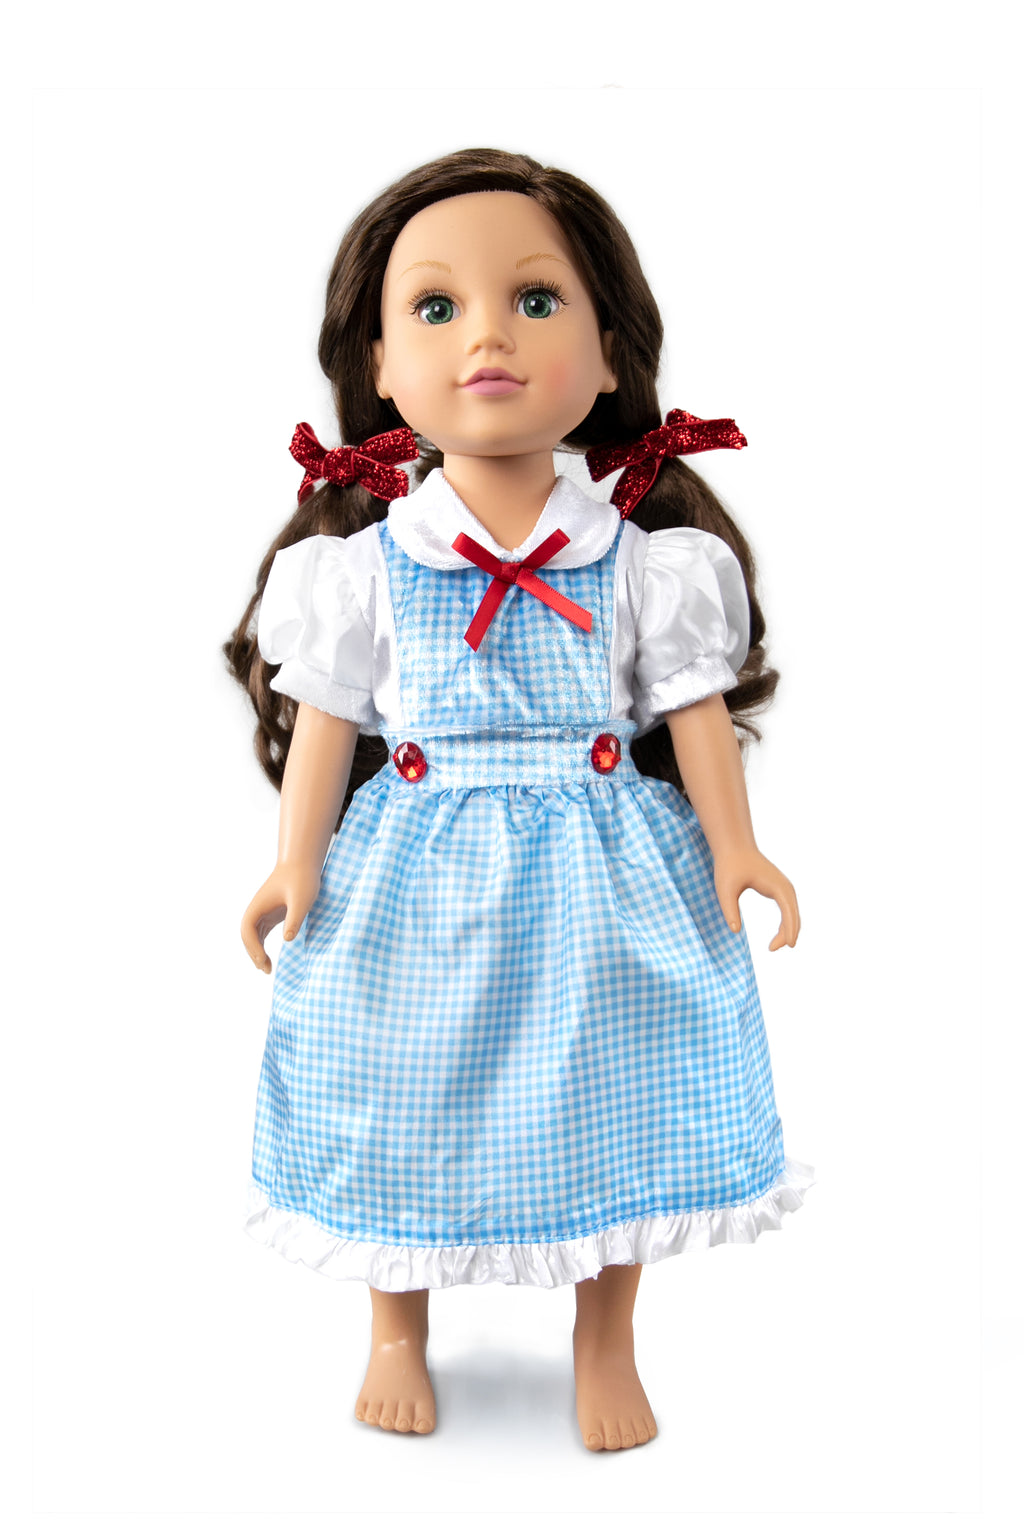 Doll Dress Kansas Girl with Bows